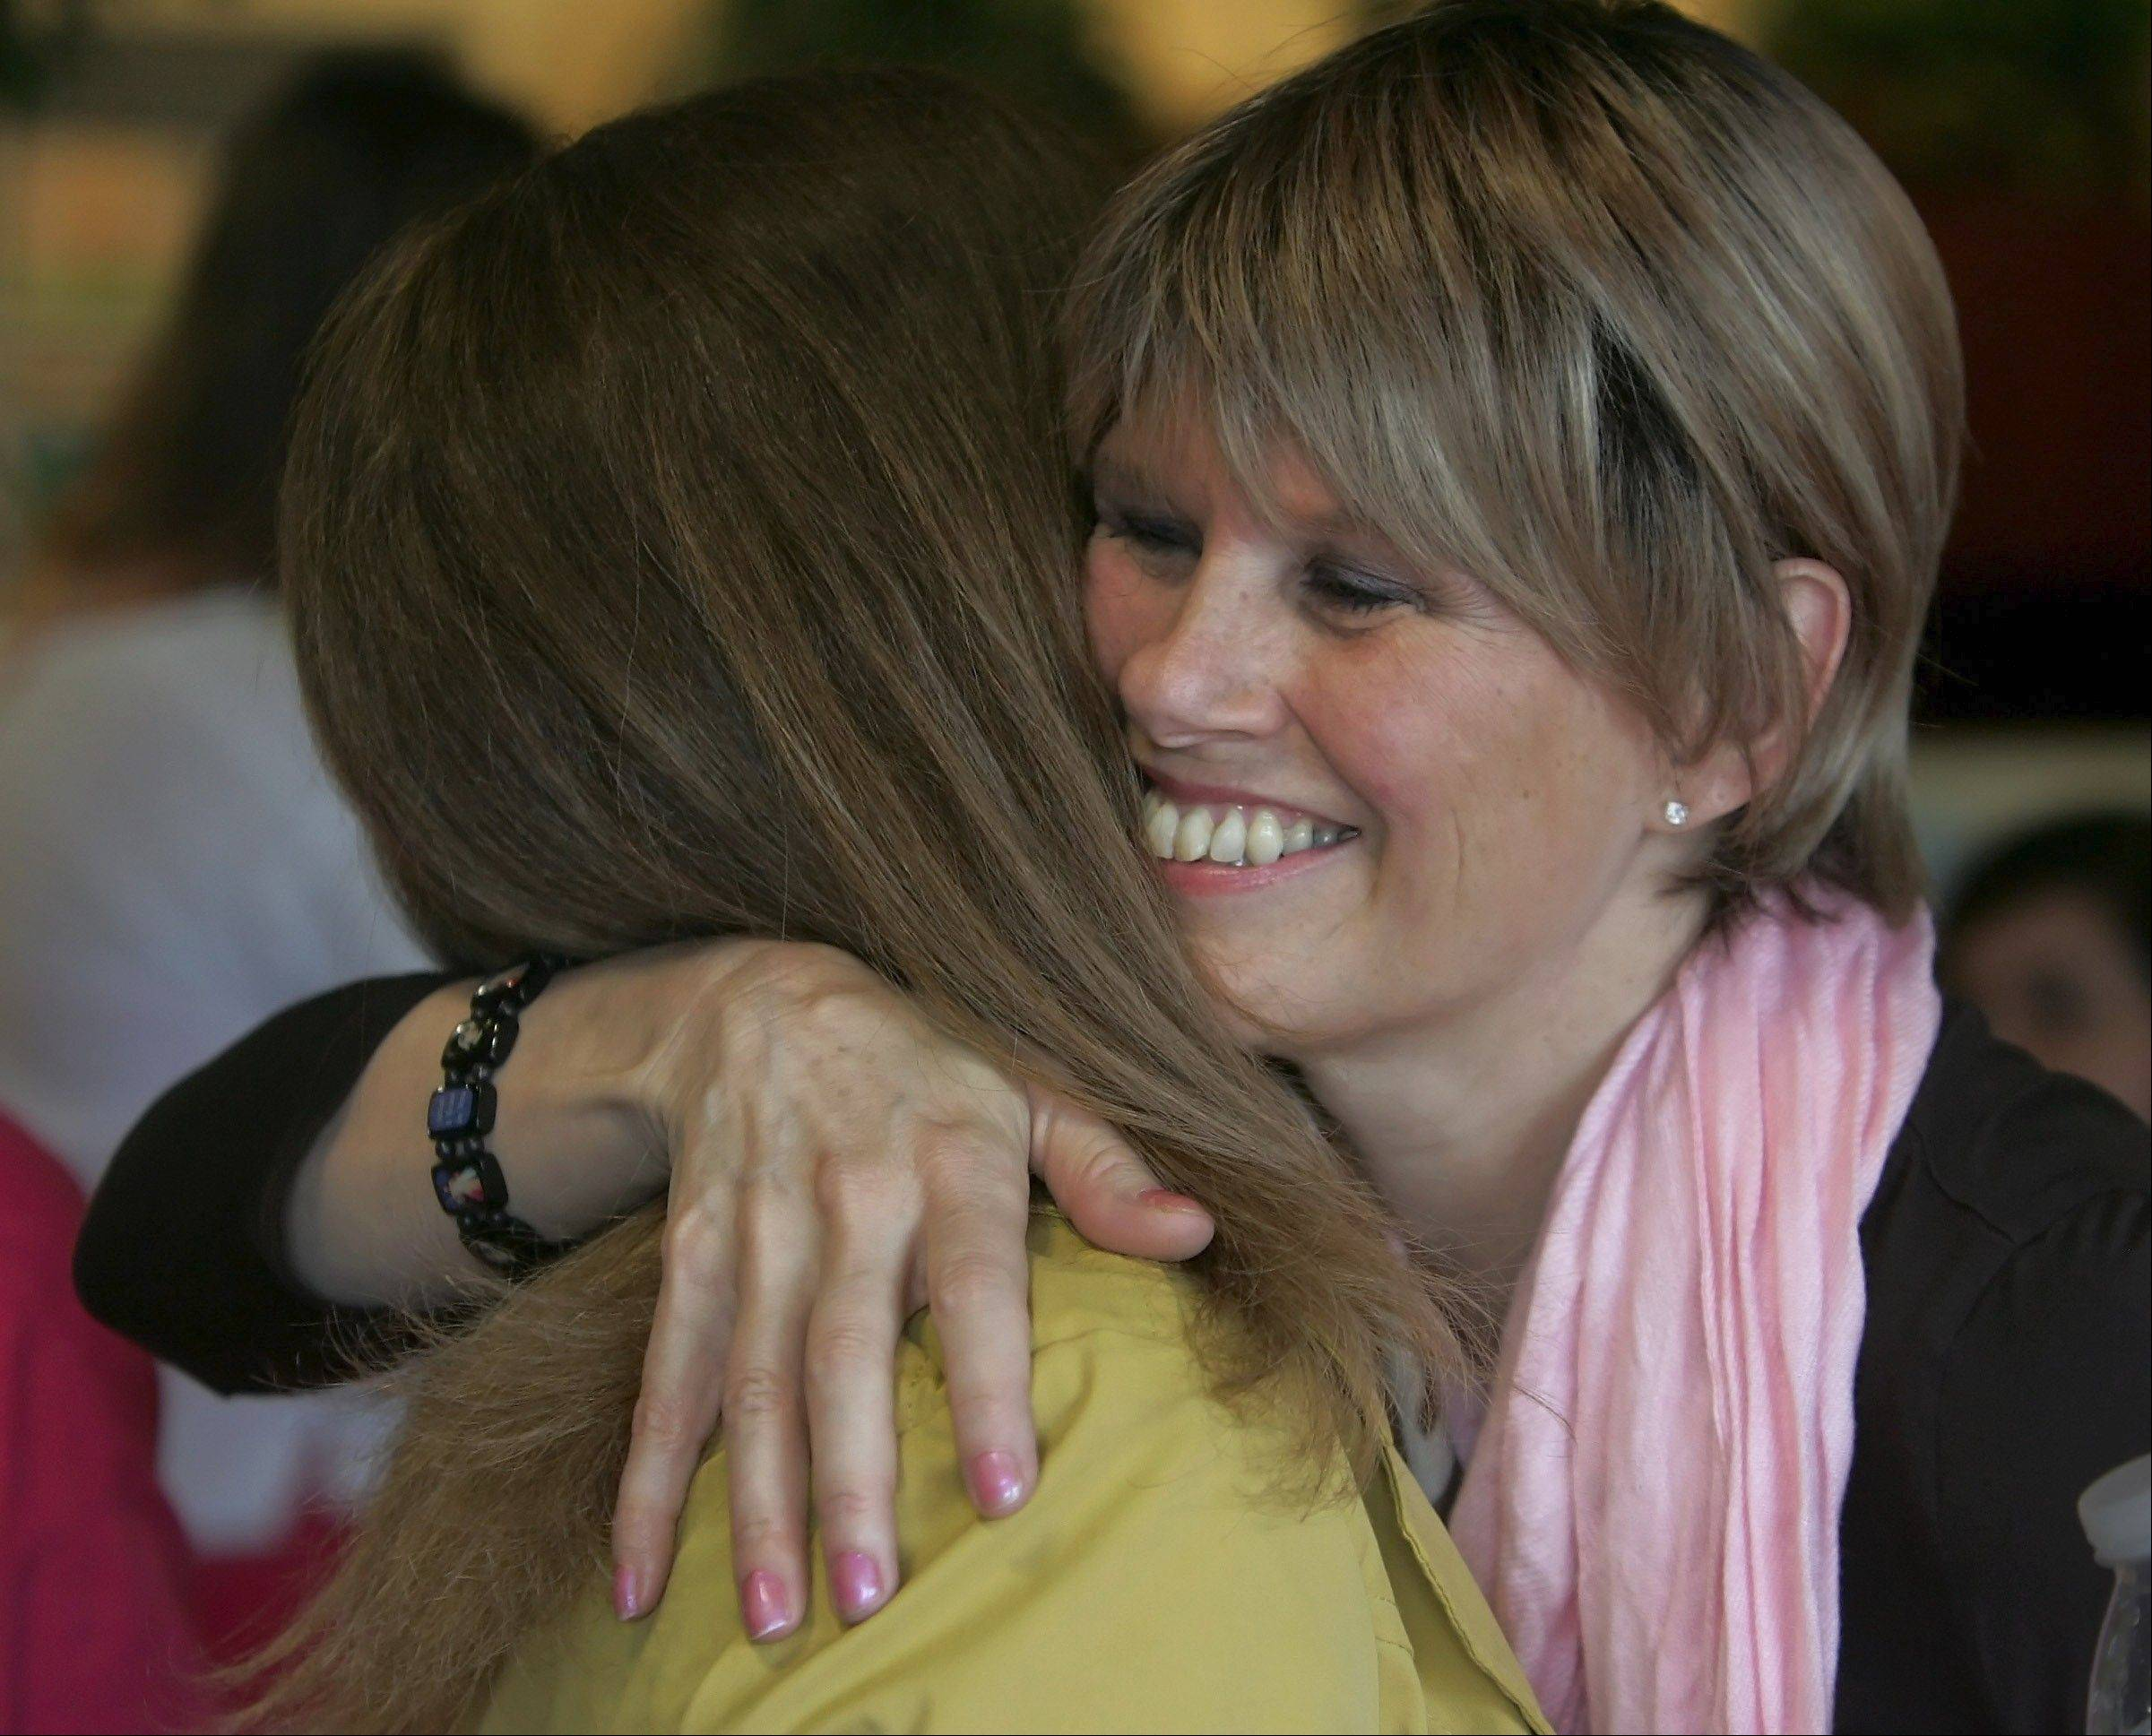 Linda Frahm gets a hug from a friend at the Haircuts For Hope event last year in Mount Prospect.